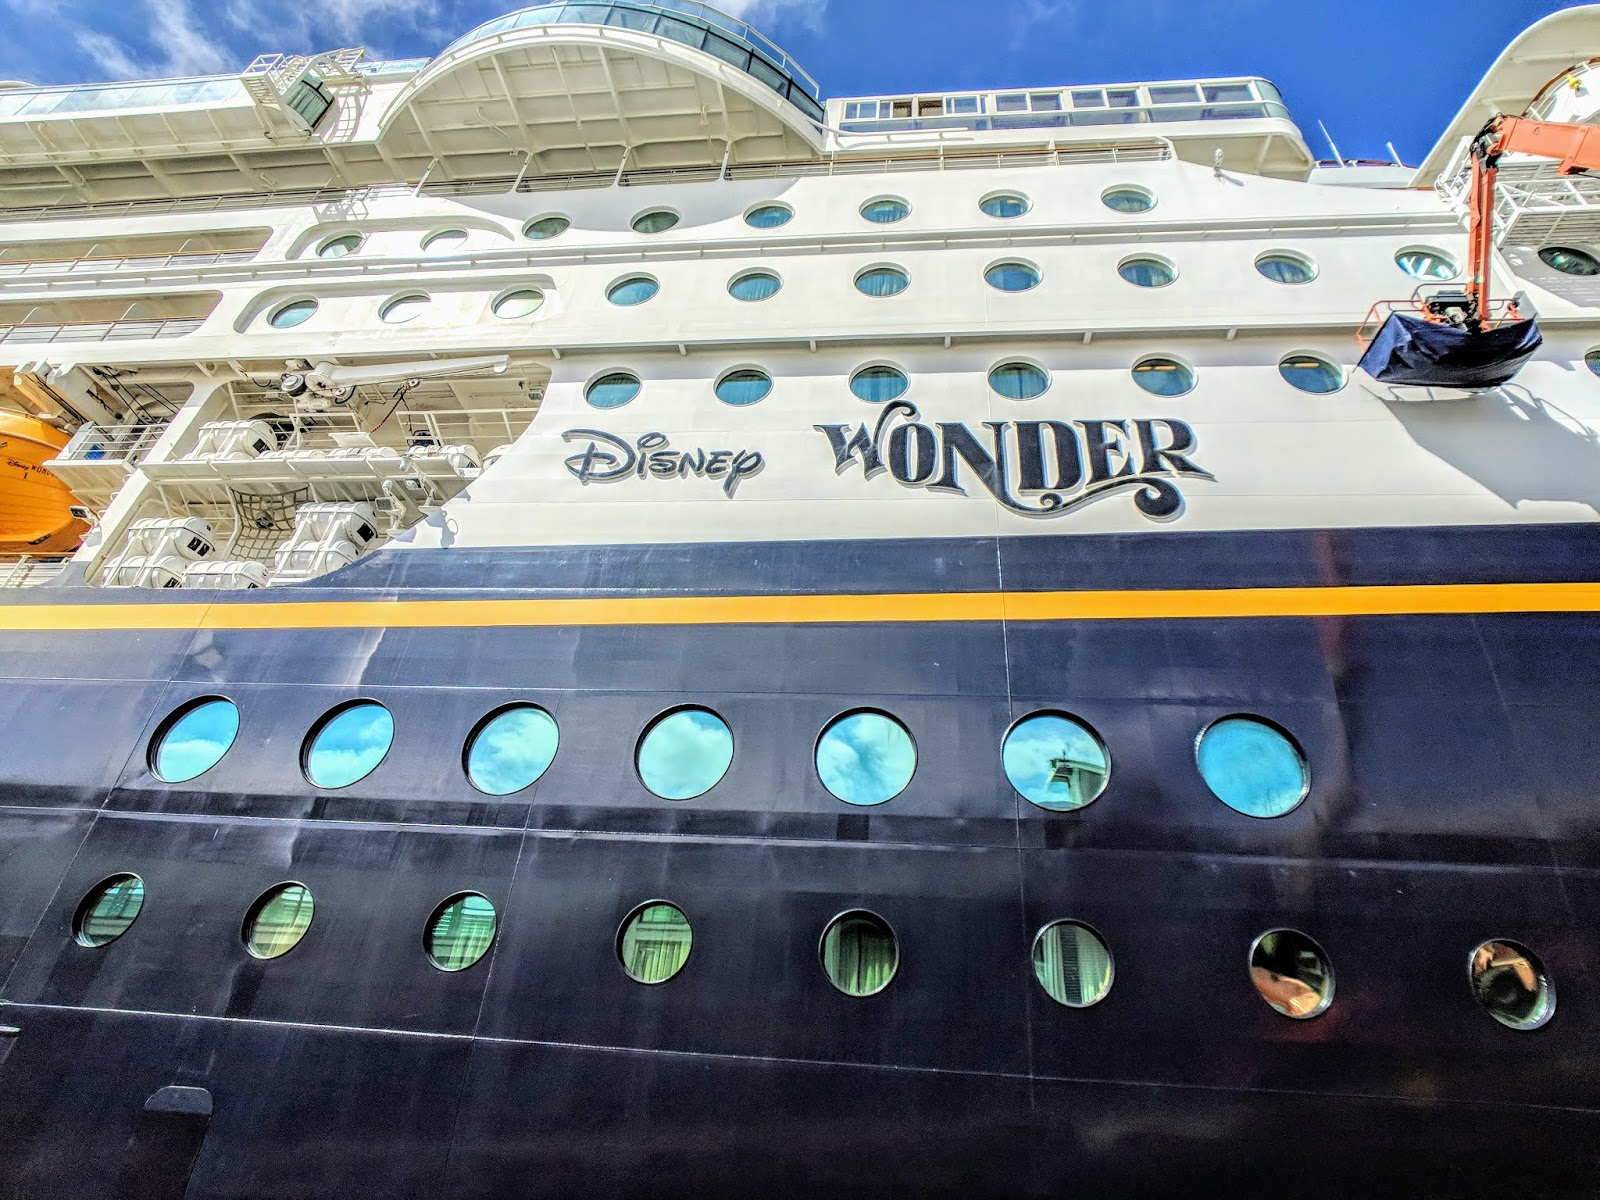 Disney Cruise Line: New Cruises and Destination for 2020